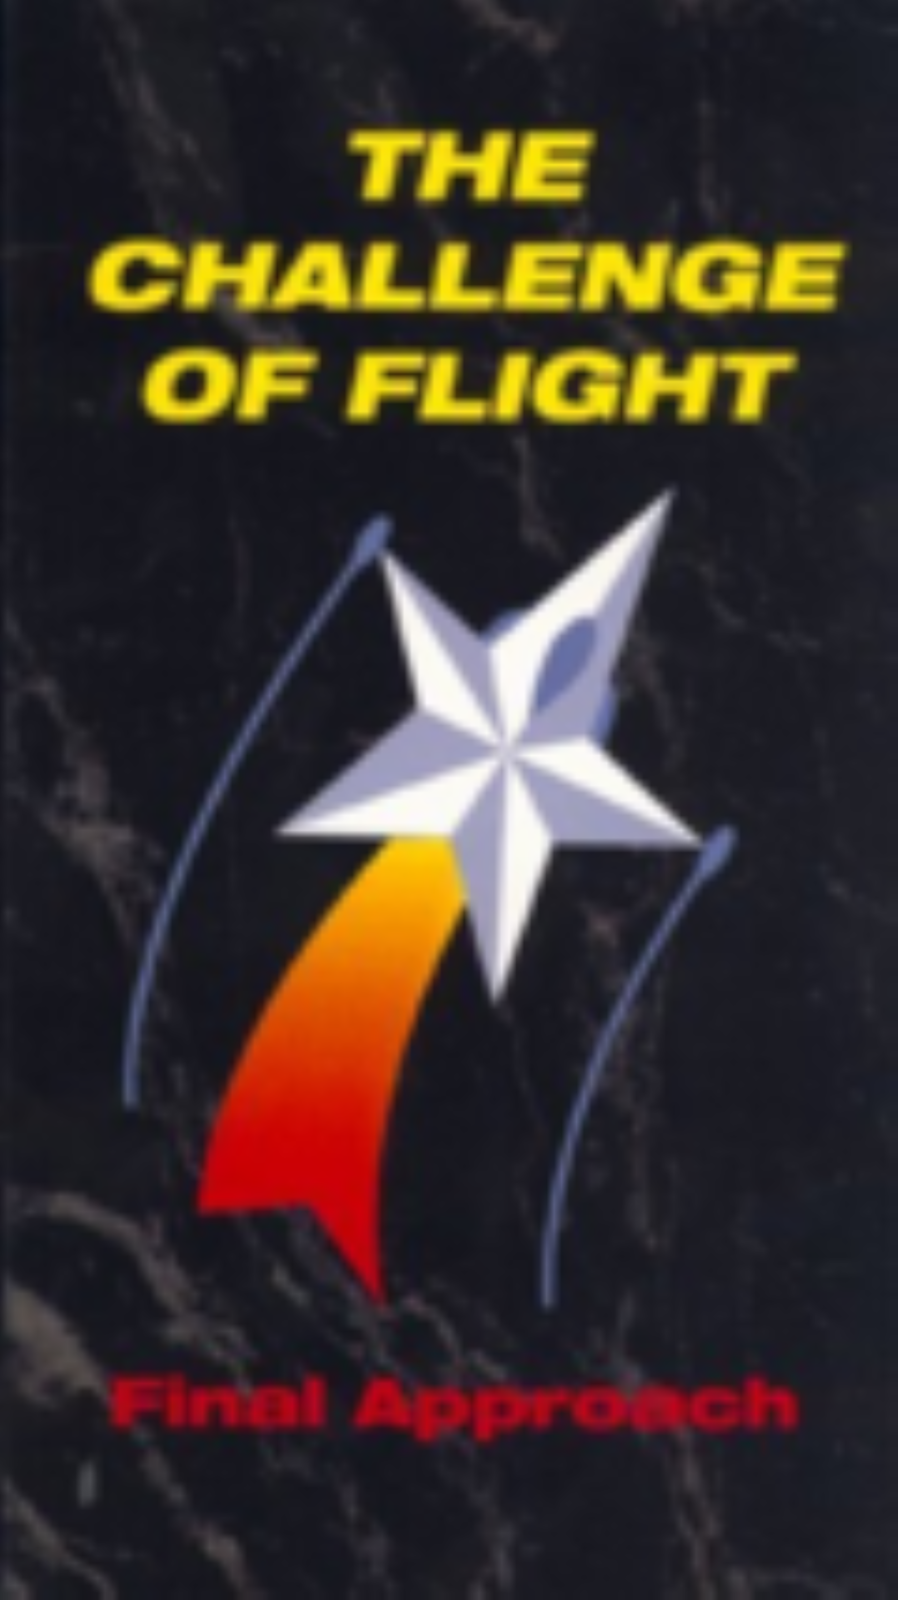 Challenge Of Flight Vol. 1: Final Approach Vhs